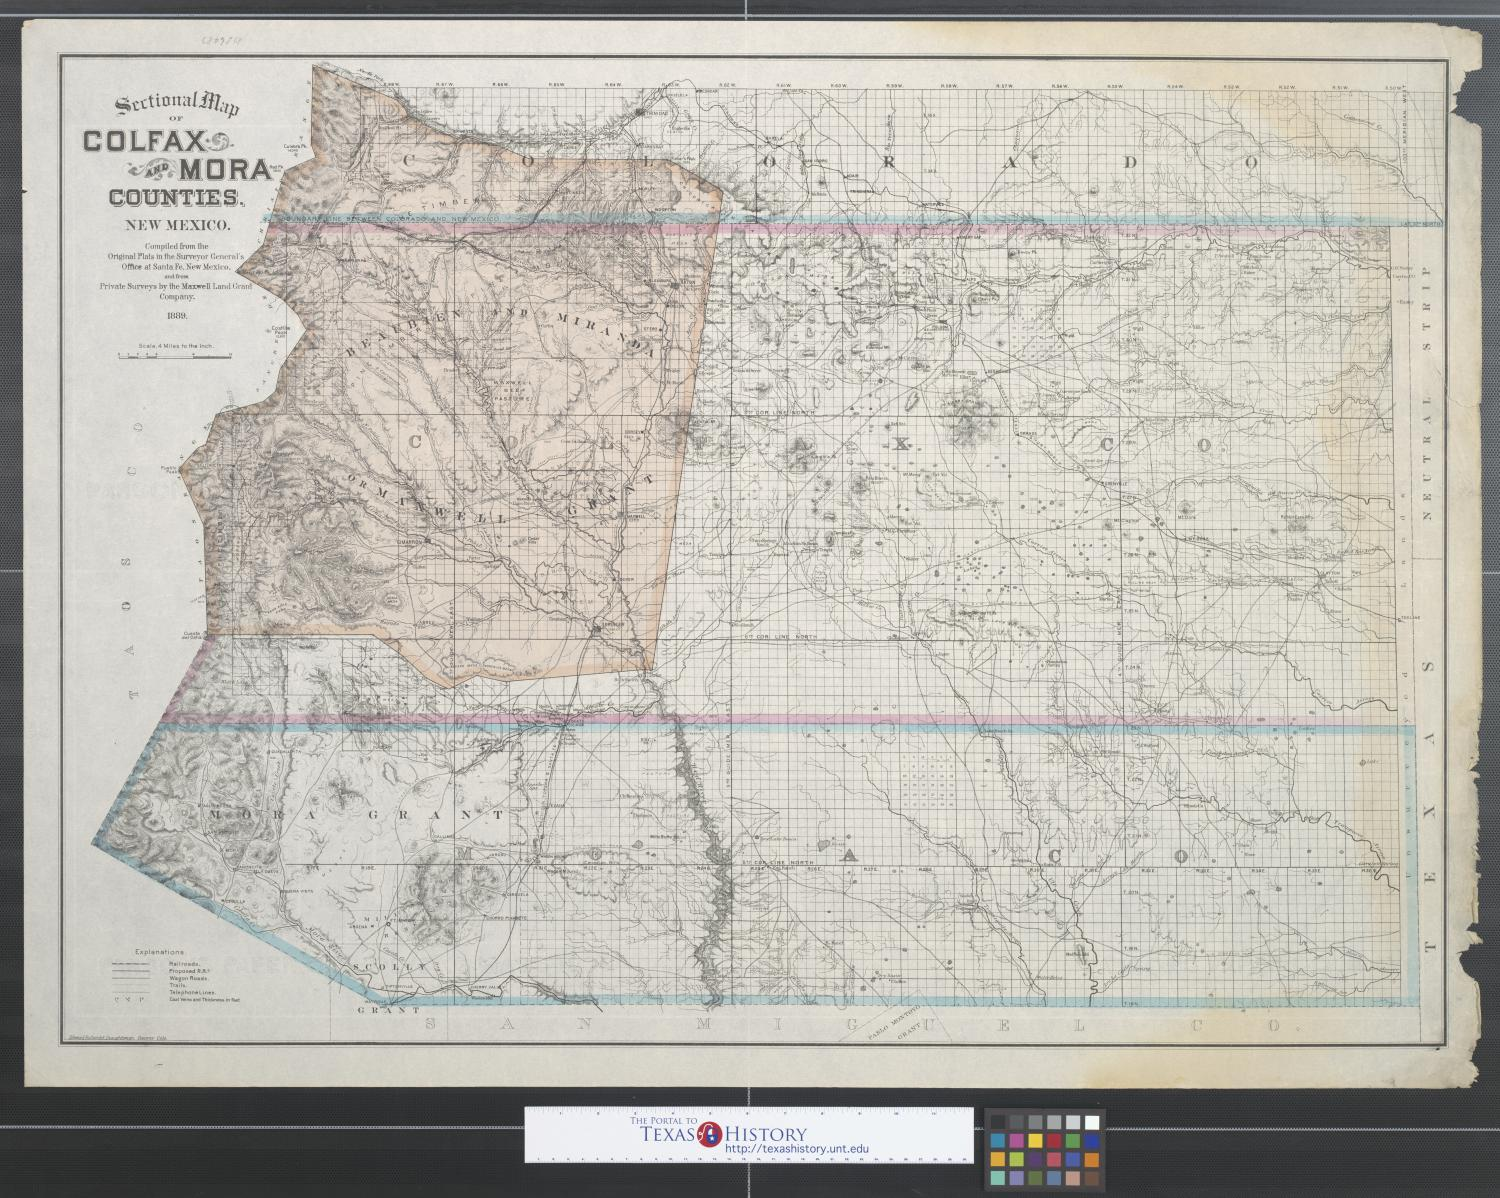 Sectional map of Colfax and Mora Counties New Mexico Compiled